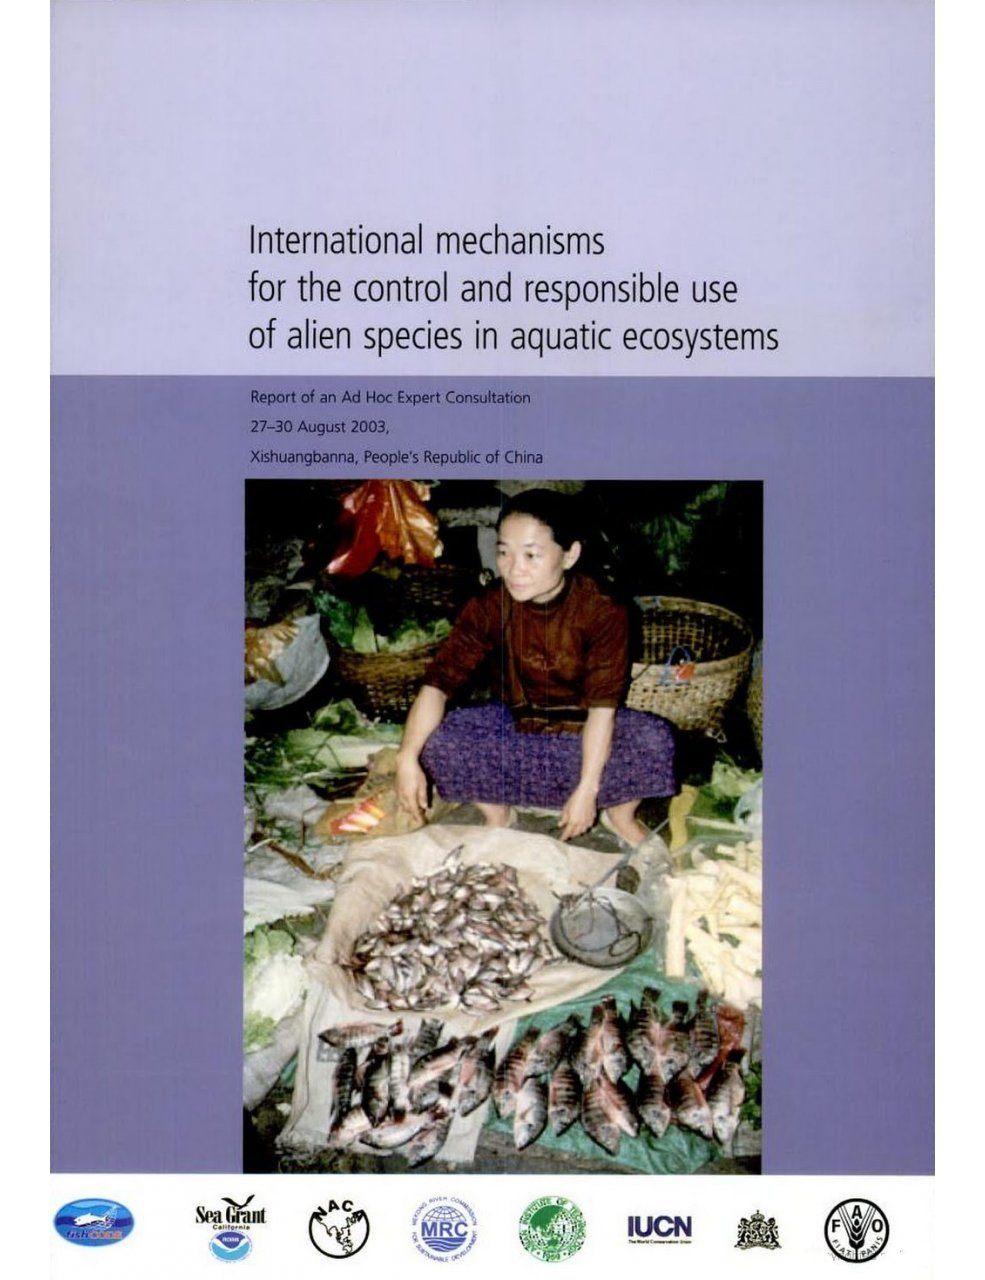 International Mechanisms for the Control and Responsible Use of Alien Species in Aquatic Ecosystems